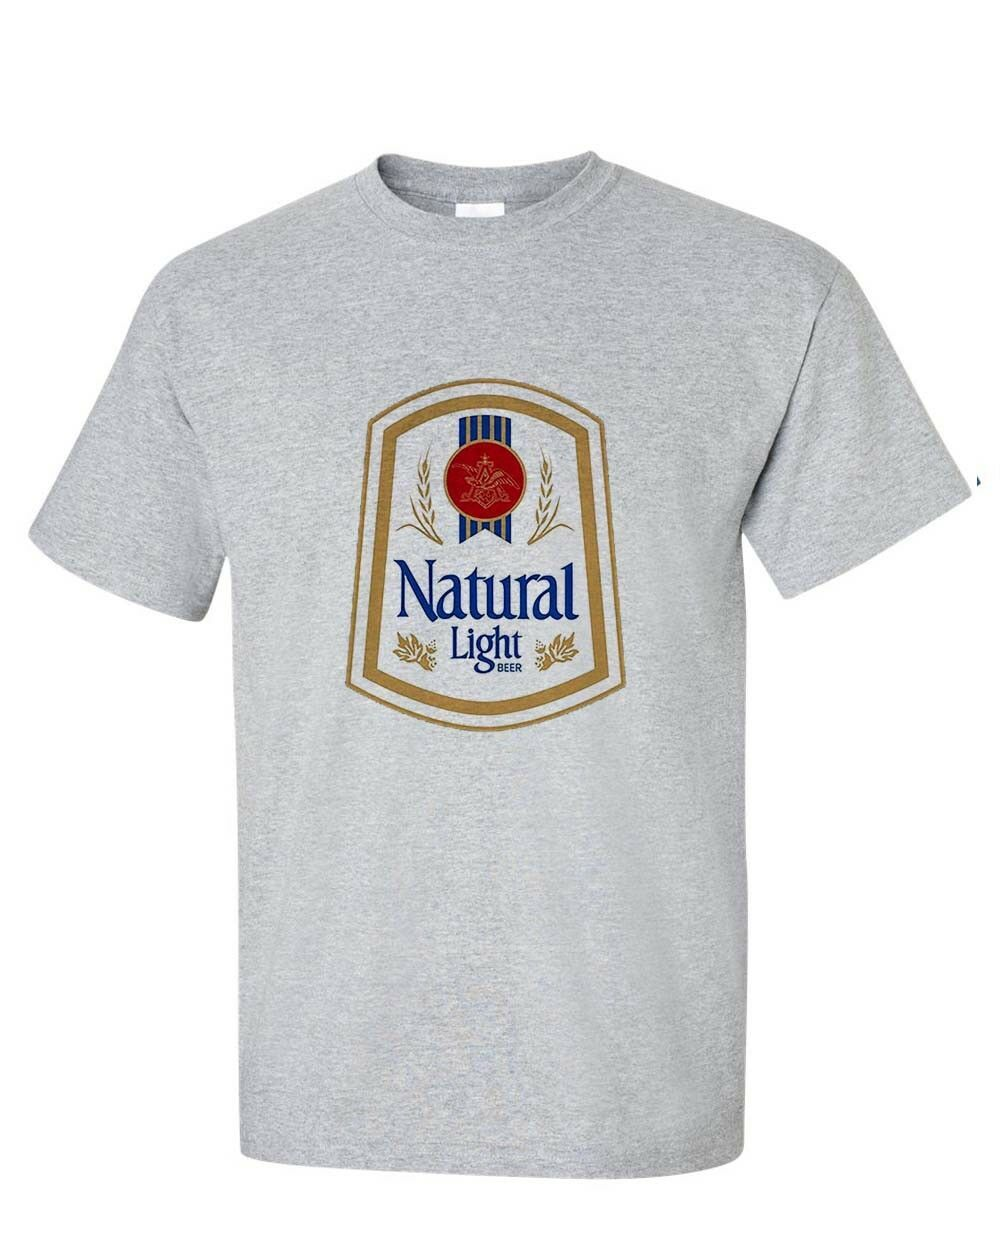 Natural Light Beer T-shirt retro vintage style distressed print grey graphic tee